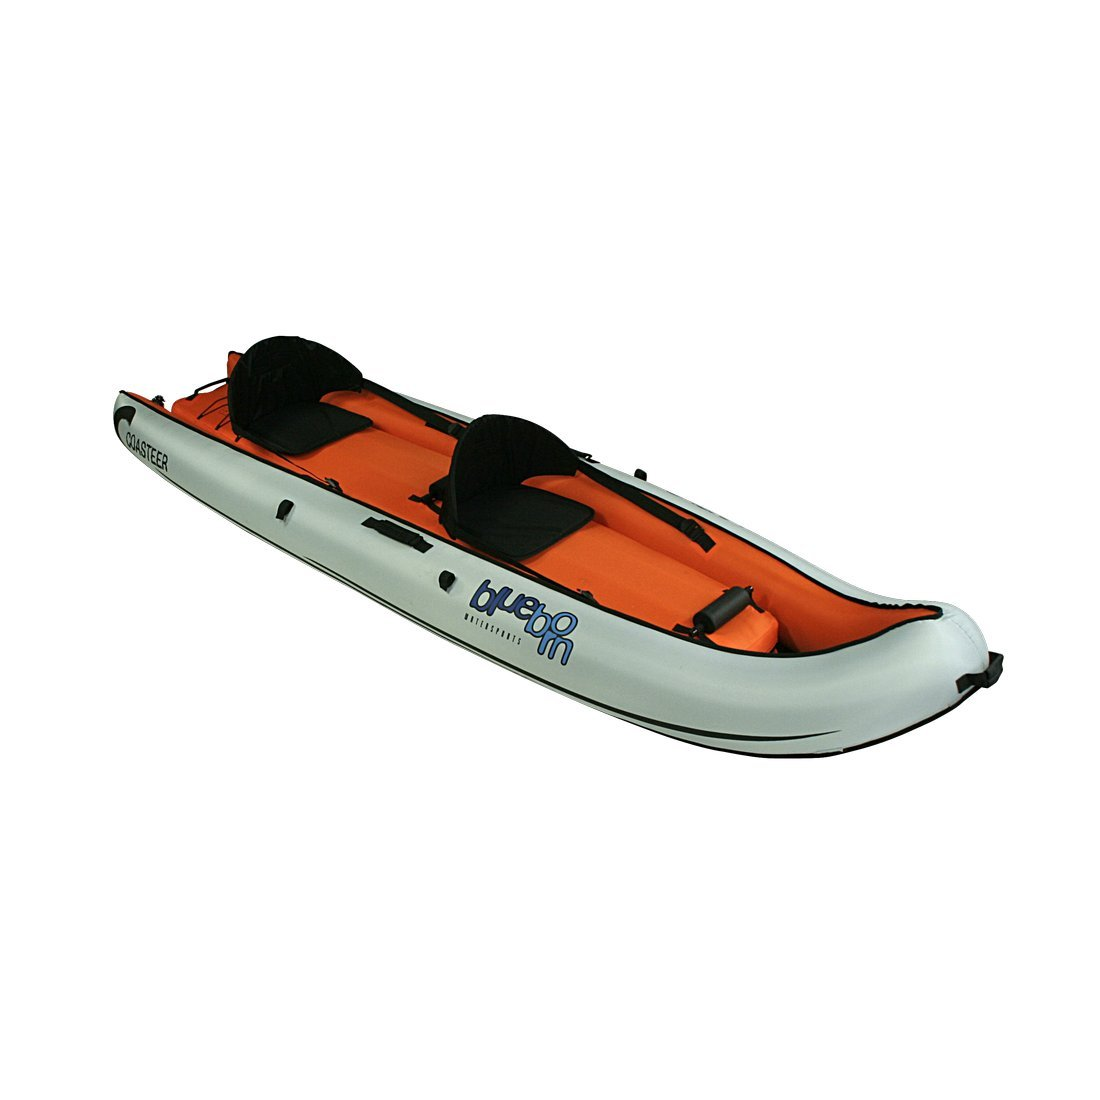 Blueborn Sit On Top Boot Boat Coasteer SRE 300 - Kayak